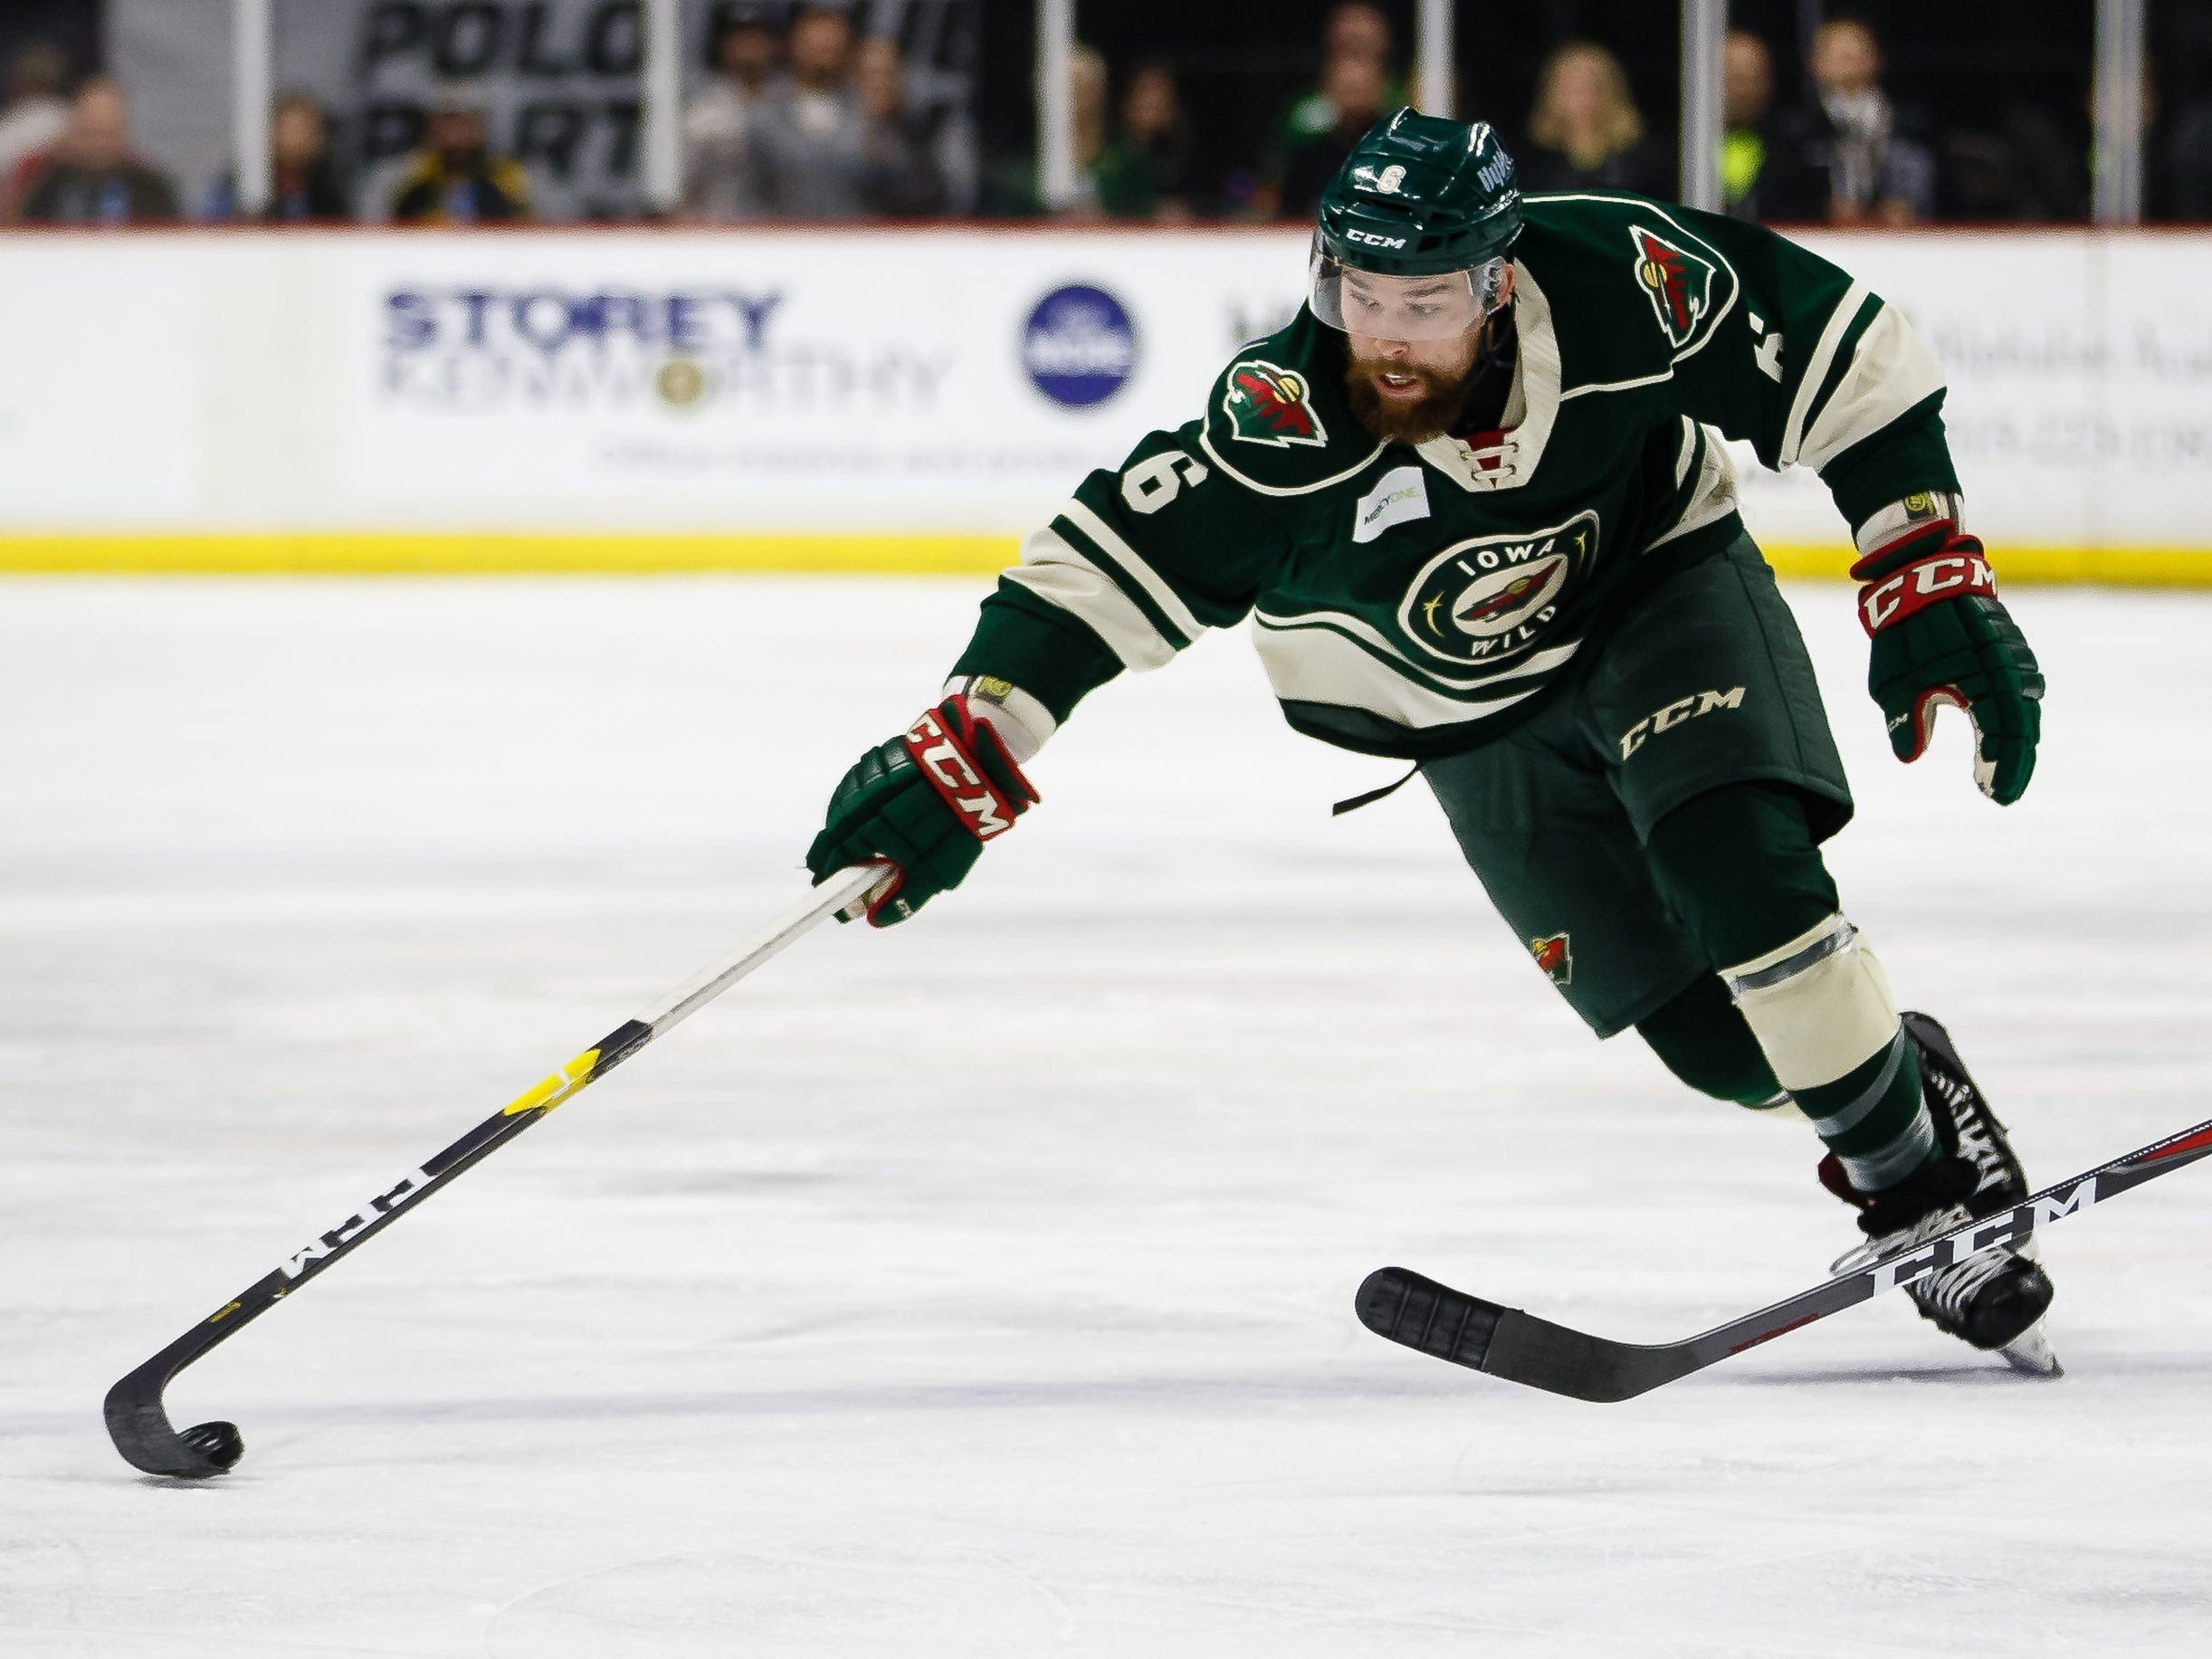 The Iowa Wild's Mitch McLain chases down a puck during their Calder Cup playoff hockey game against the Chicago Wolves on Friday, May 10, 2019, in Des Moines.